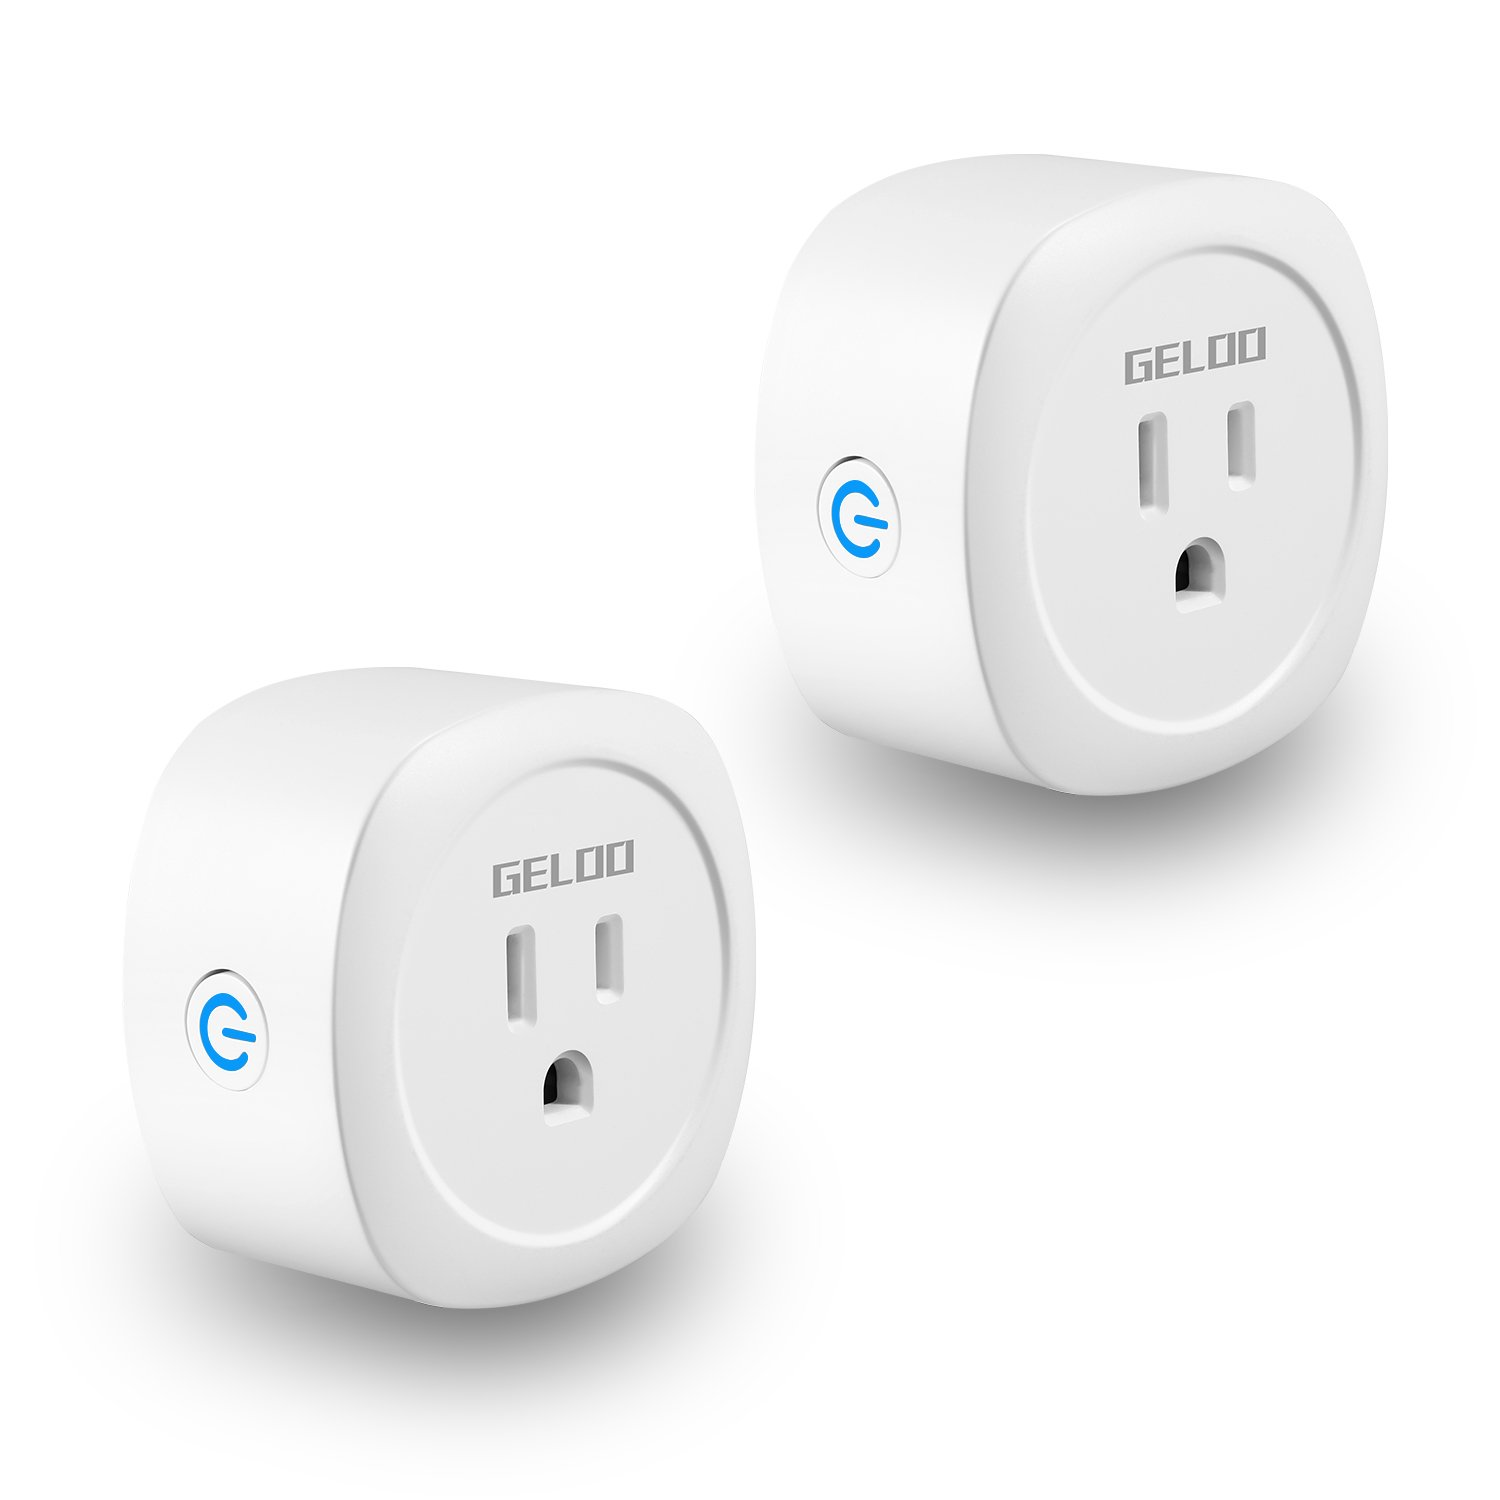 Smart Plug, GELOO WiFi Smart Outlet 2 Pack, Works with Alexa Echo/dot Compatible with Google Home Assistant IFTTT, Remote Control Your Electric Devices from Anywhere, No Hub Required